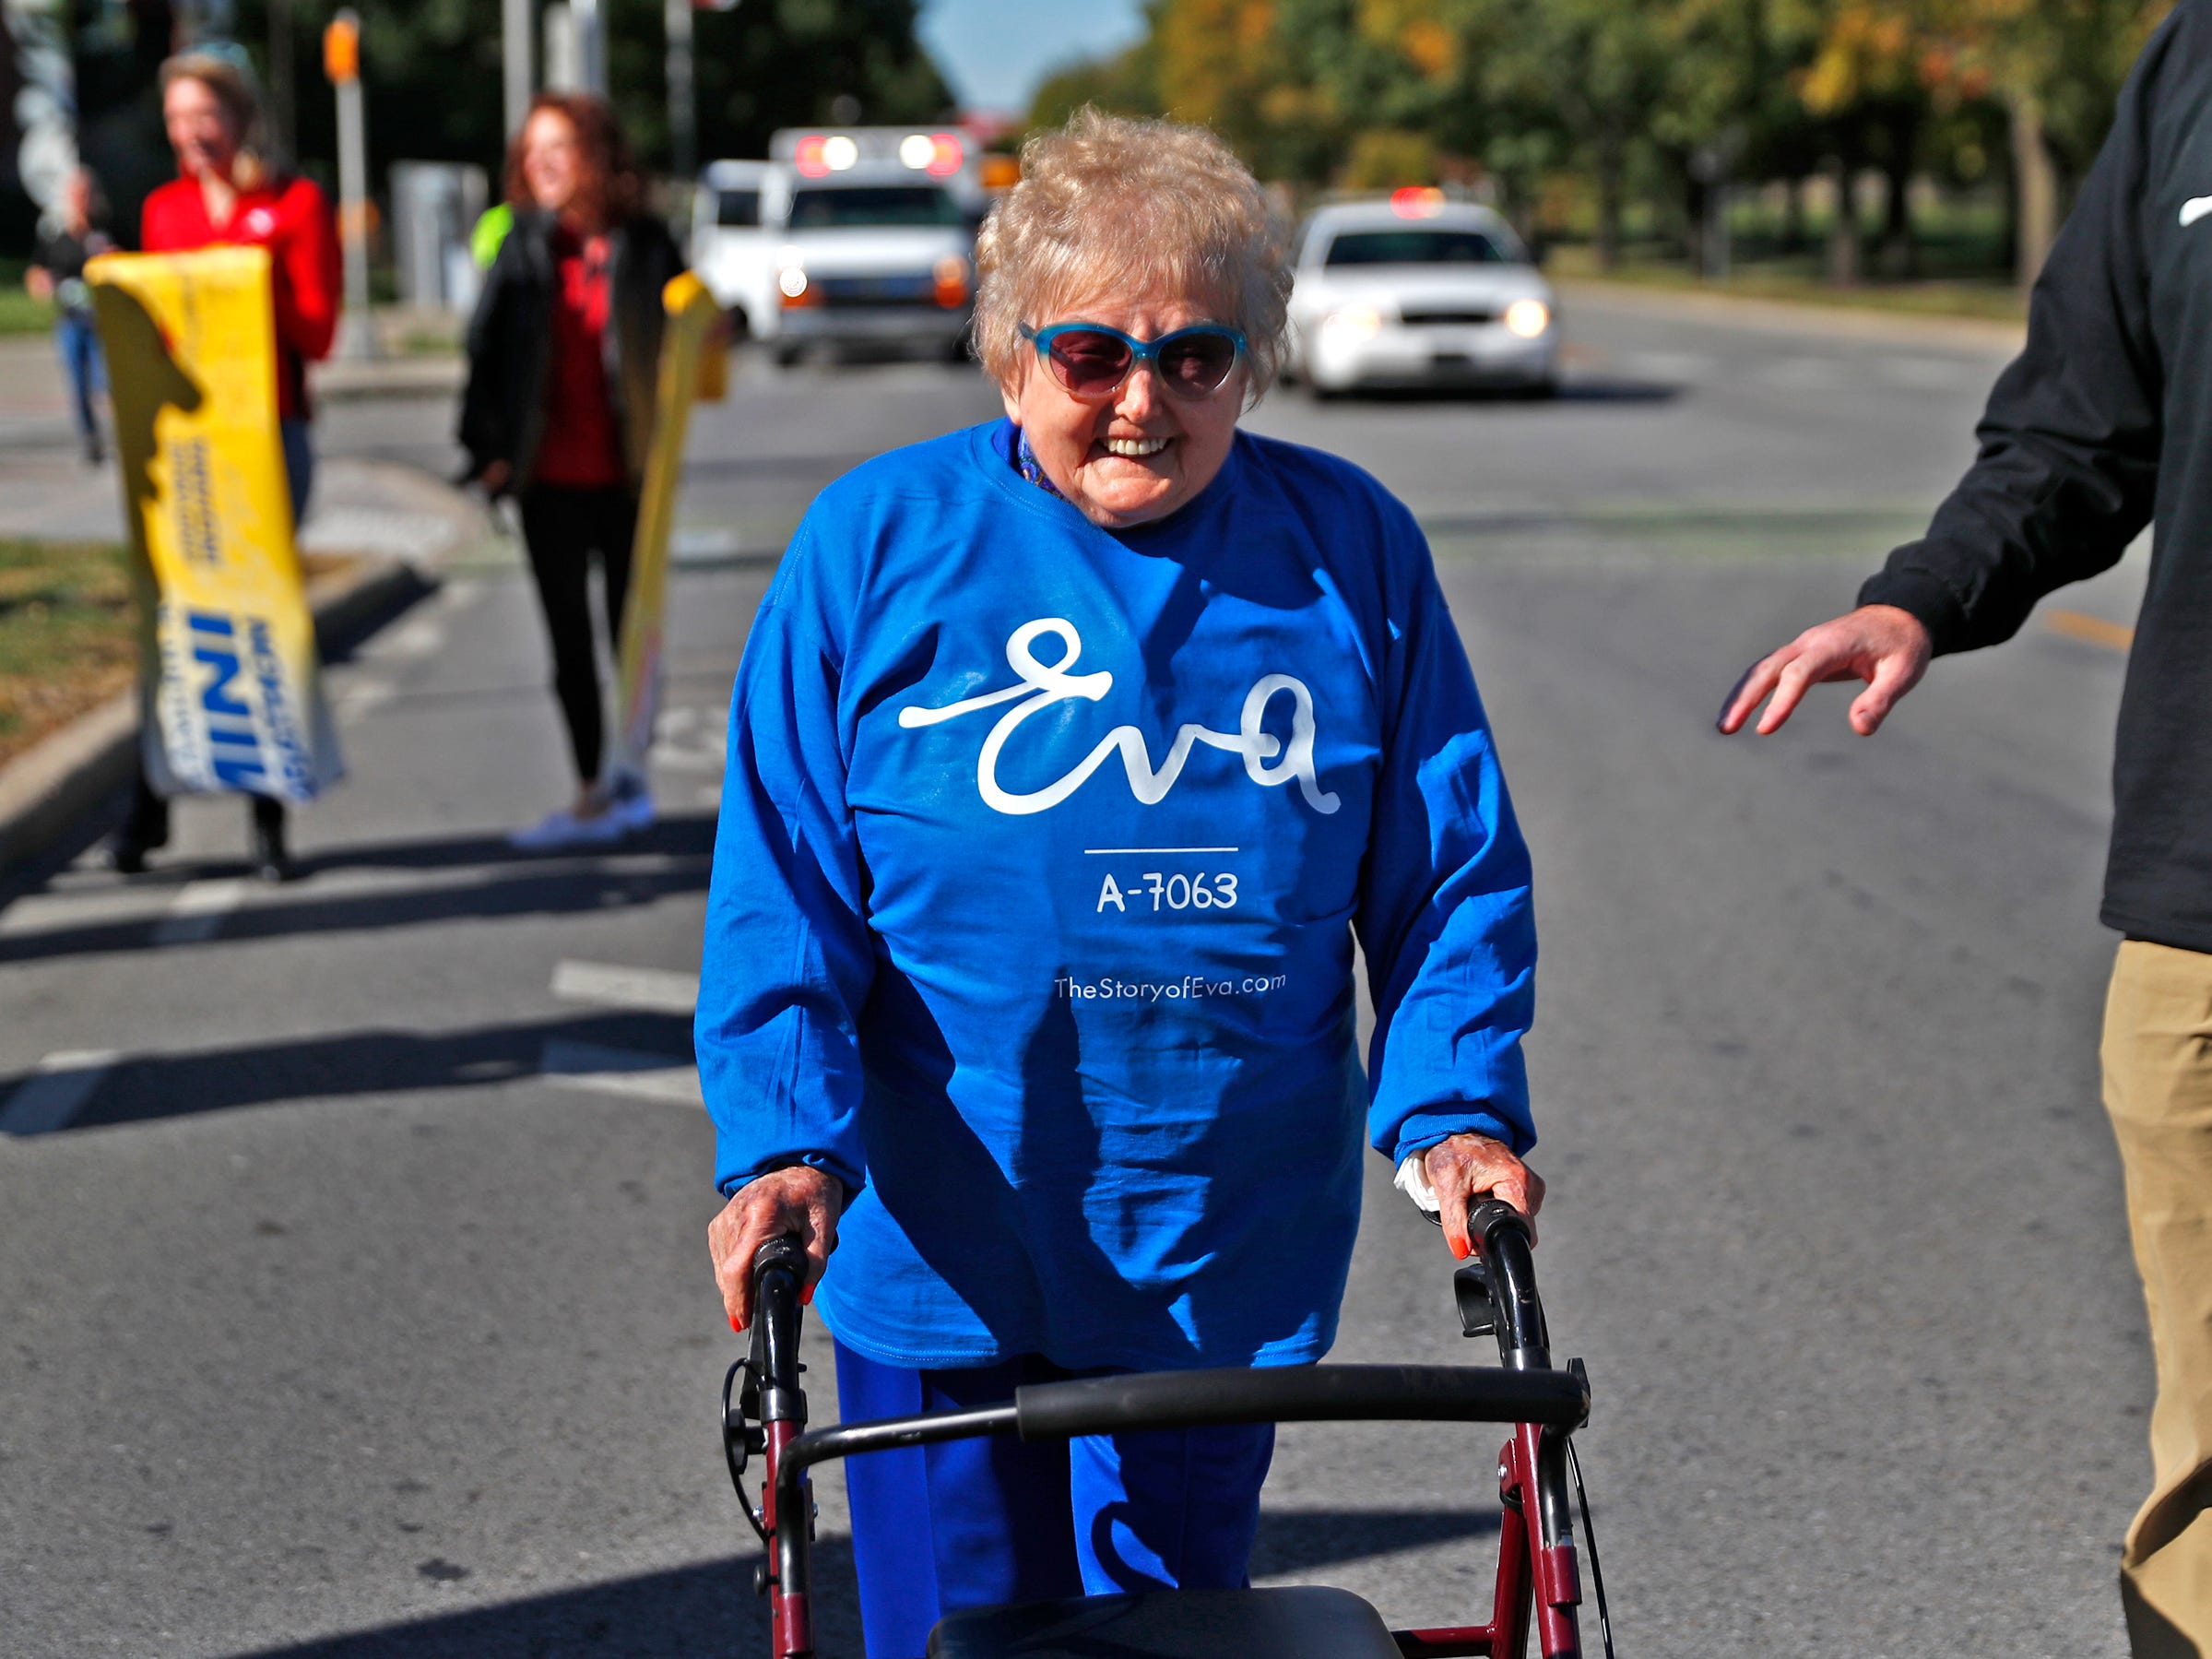 Holocaust survivor Eva Kor smiles after finishing the end leg of the pace-setting run for the 2019 OneAmerica 500 Festival Mini-Marathon, Wednesday, Oct. 24, 2018.  The 500 Festival will donate $1 to the CANDLES Holocaust Museum in Terre Haute for every mini-marathon participant who finishes the 2019 race in a better time than Team Eva, which was 2 hours, 7 minutes, 36 seconds.